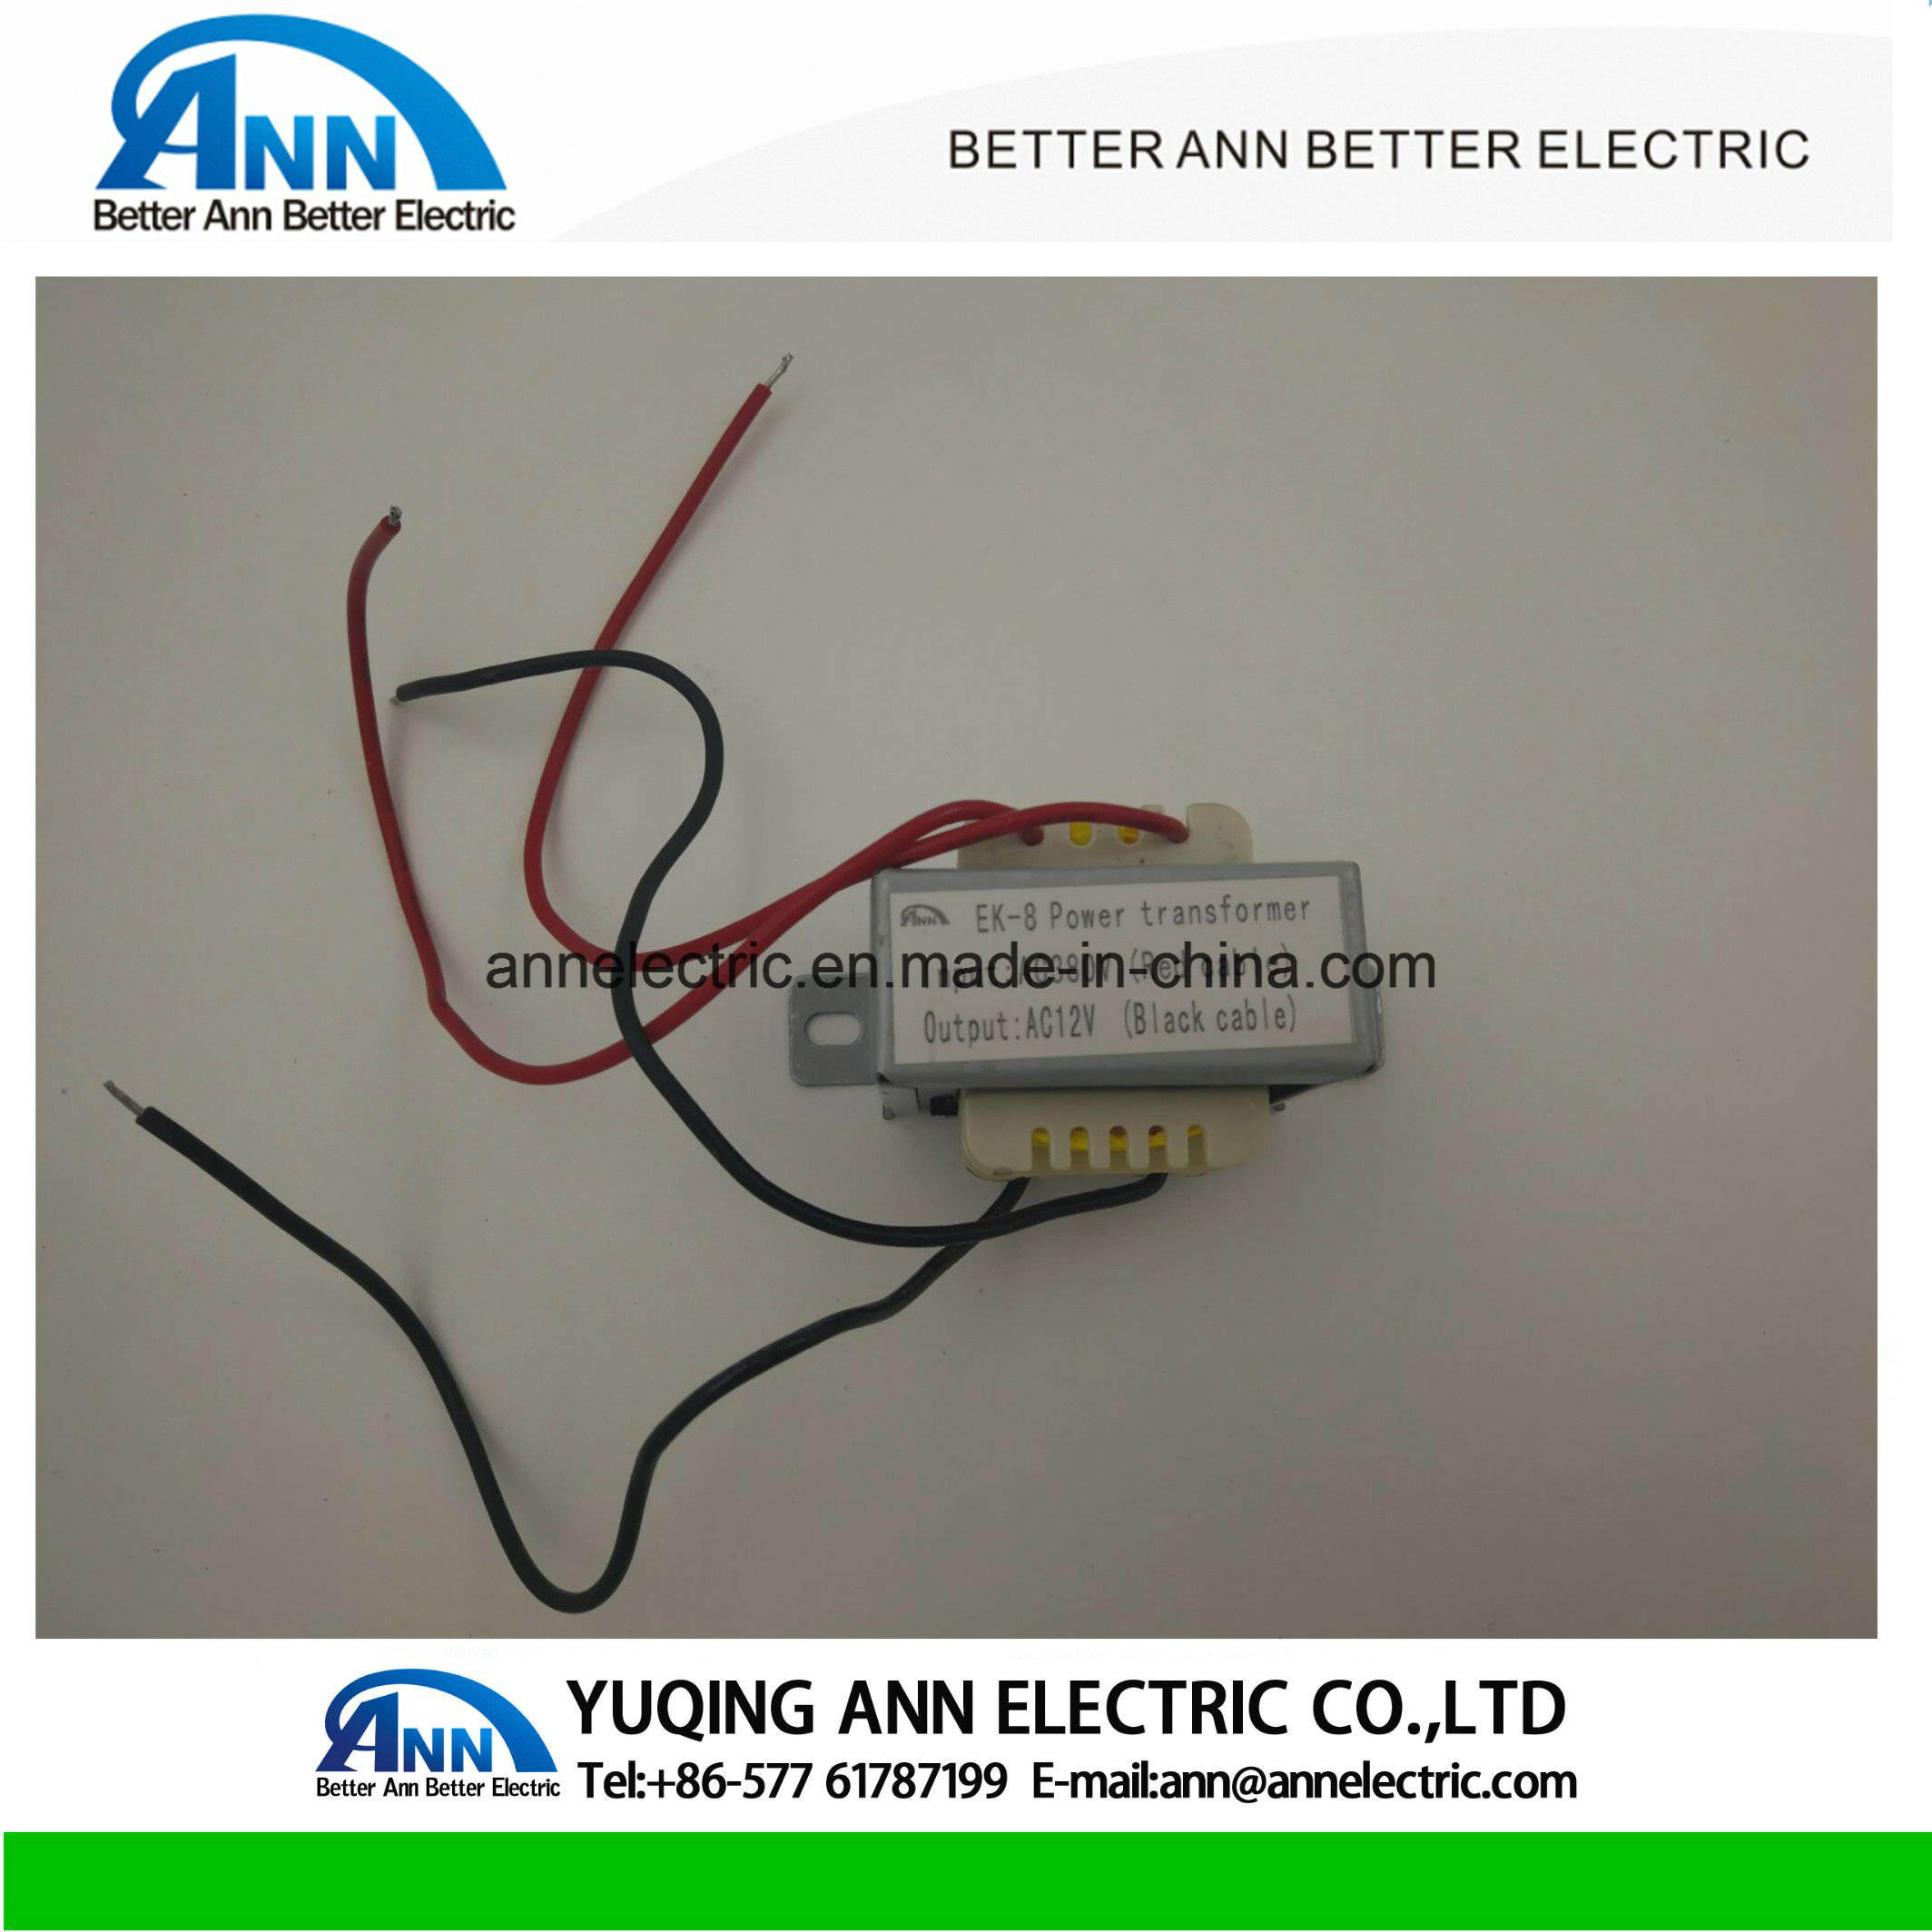 China Ei Transformer Single Phase Power 230V 240V 120V 100V with UL PSE CCC  Ce CB Approval - China Power Transformers, Transformers